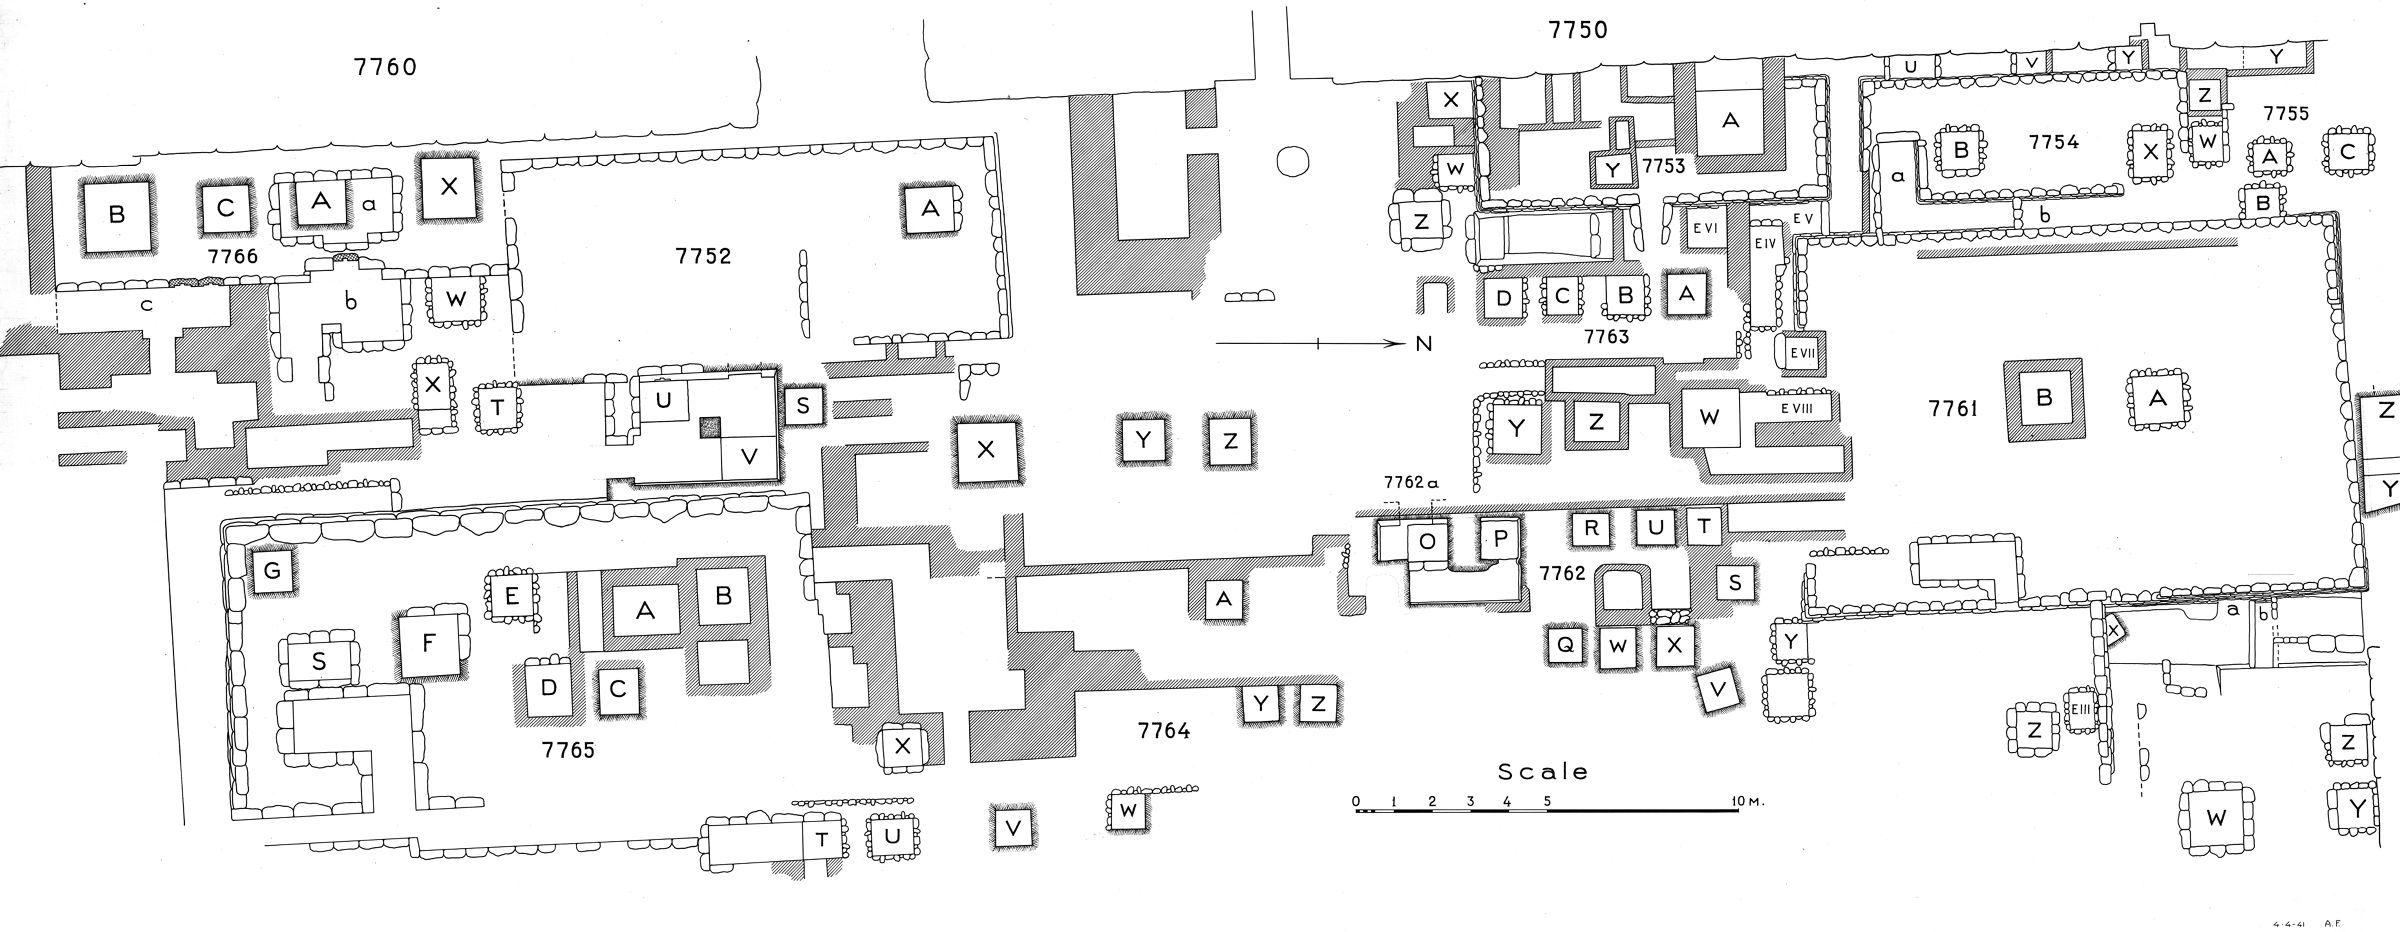 Maps and plans: Plan of cemetery G 7000: G 7700s (1 of 2)